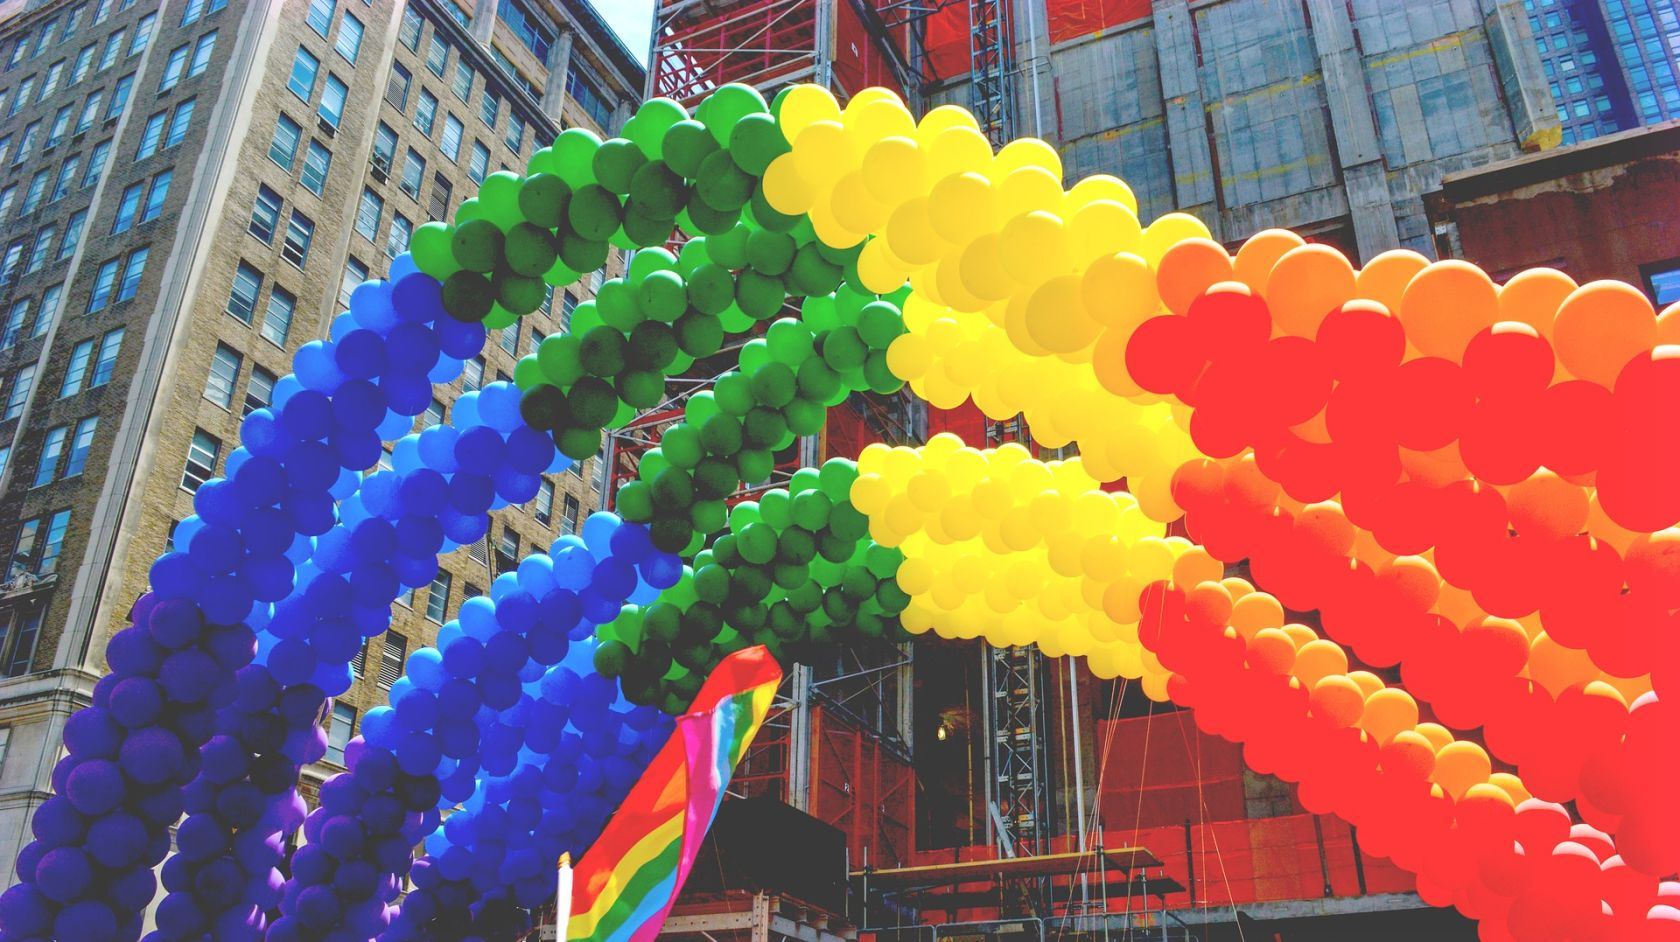 Colorful balloons making up the gay flag